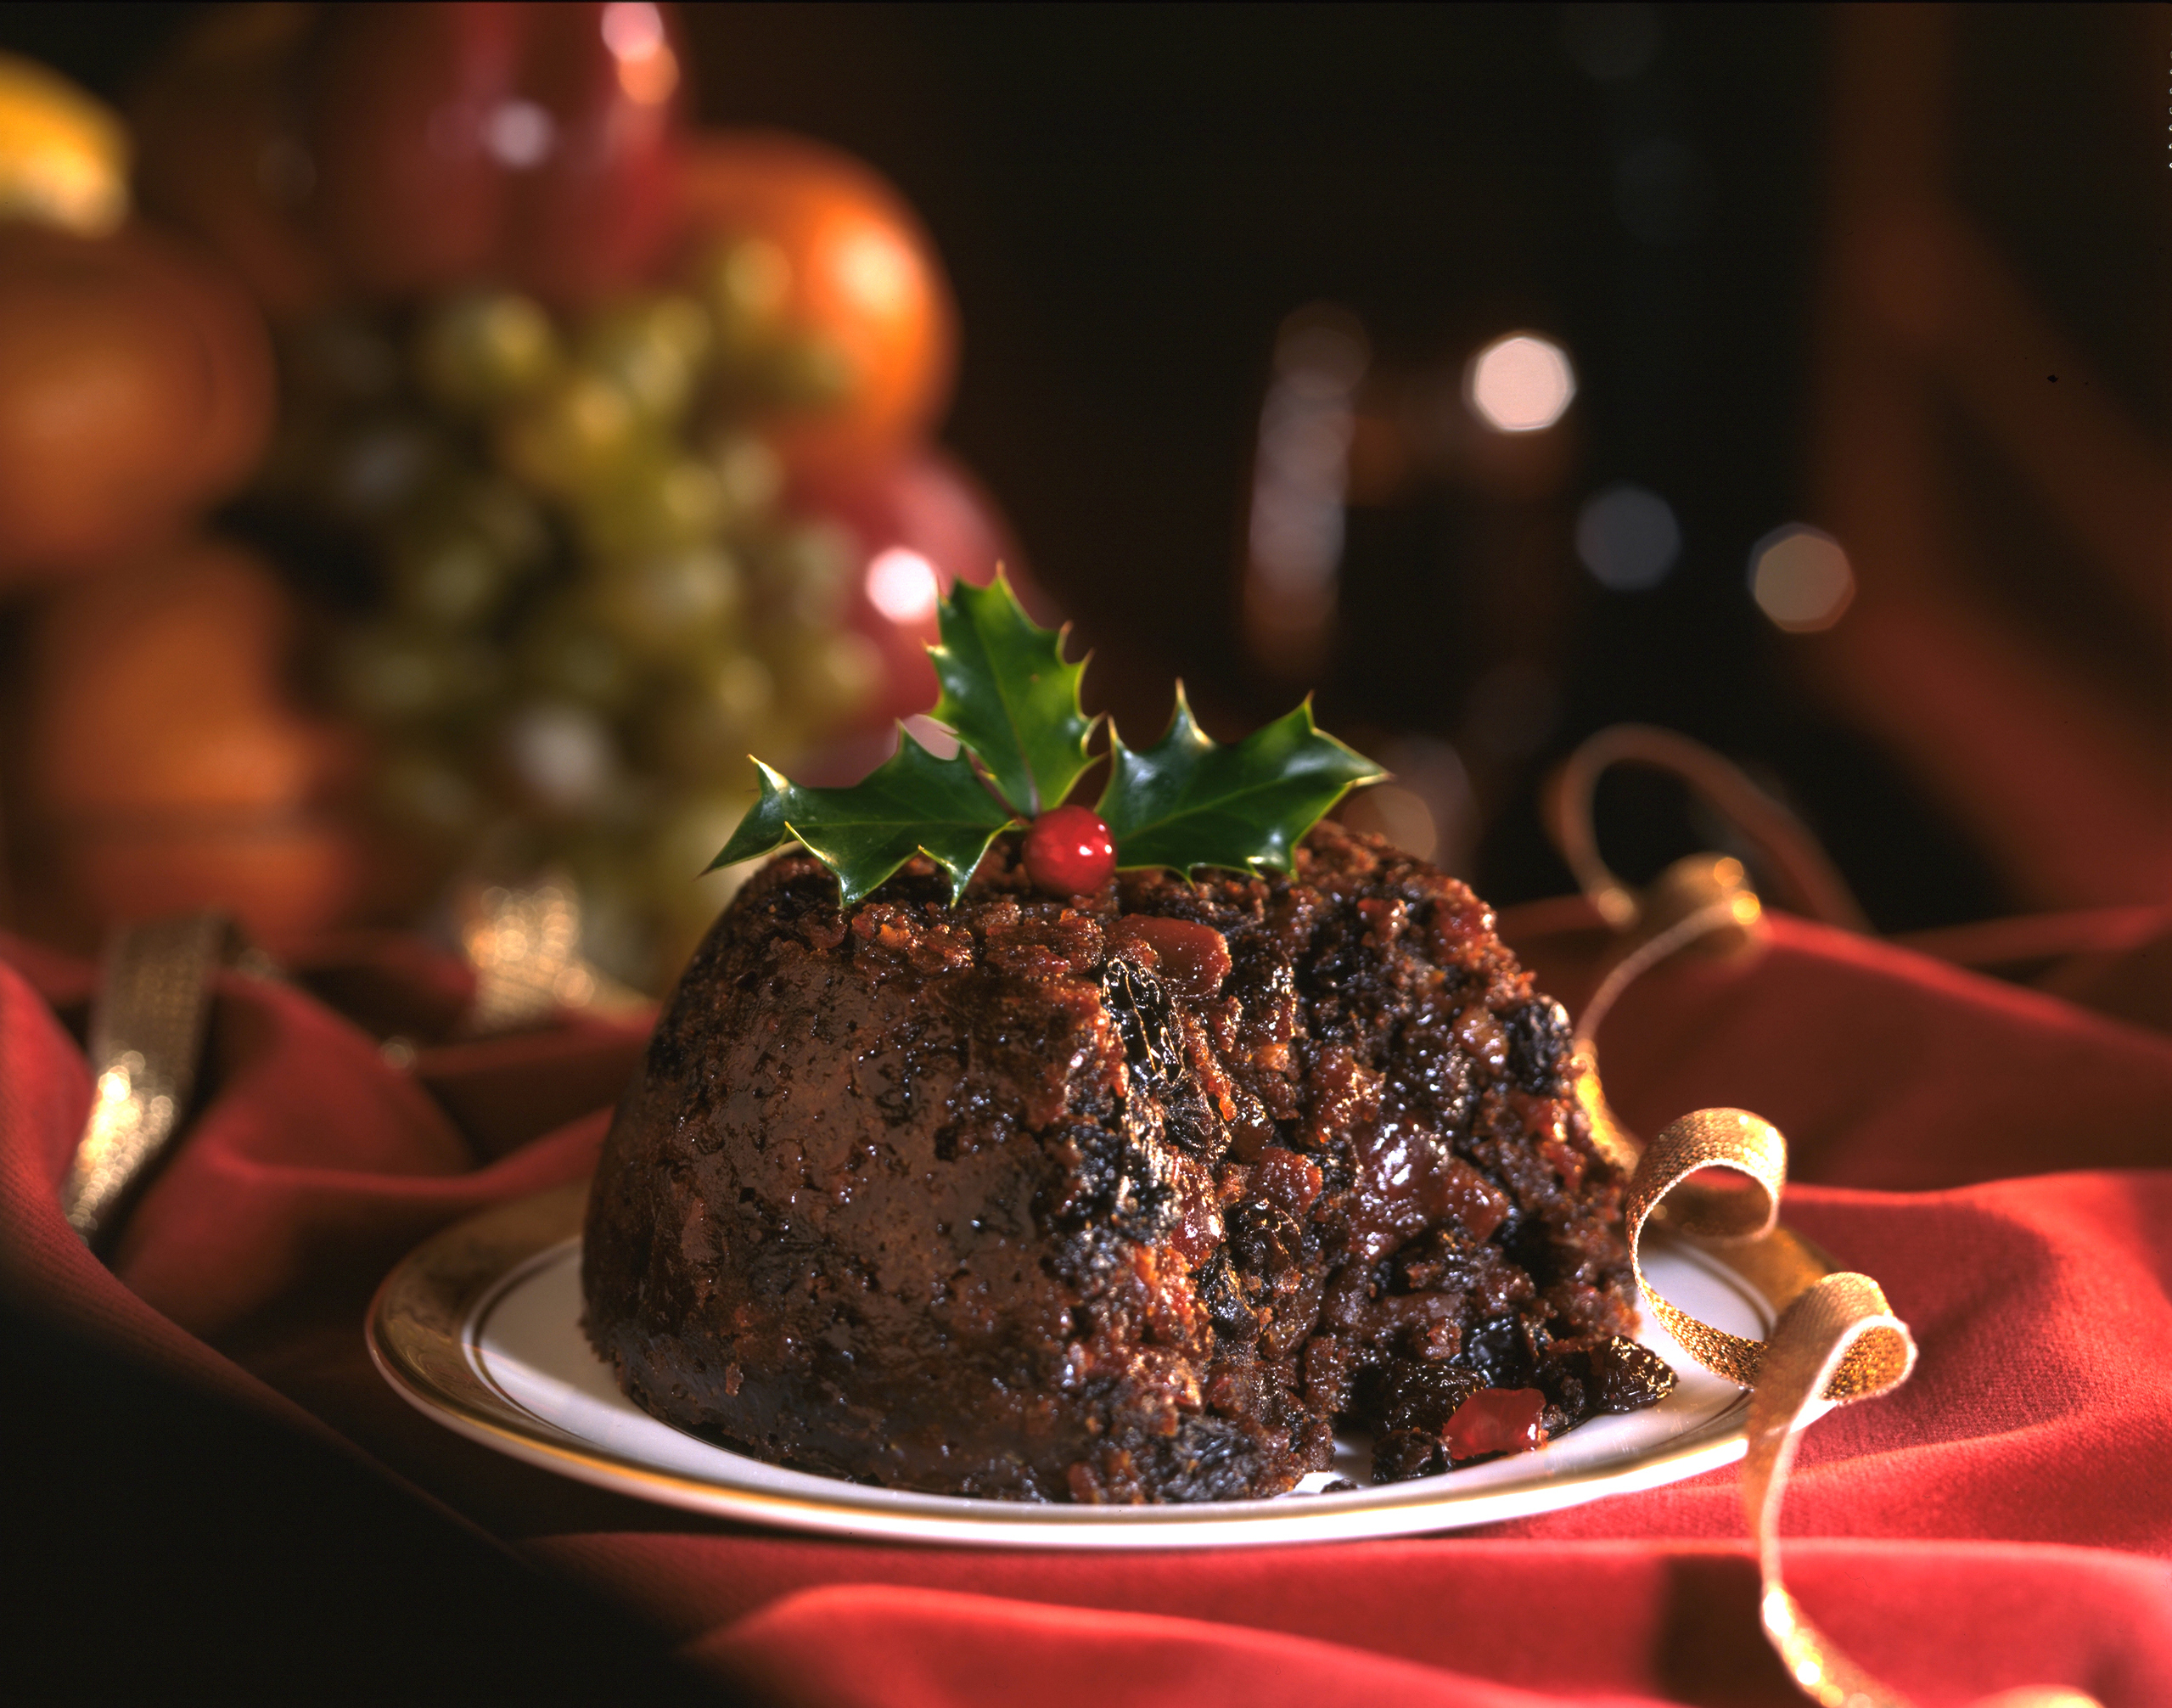 christmas-pudding-freshpoint-produce-holiday-food-traditions